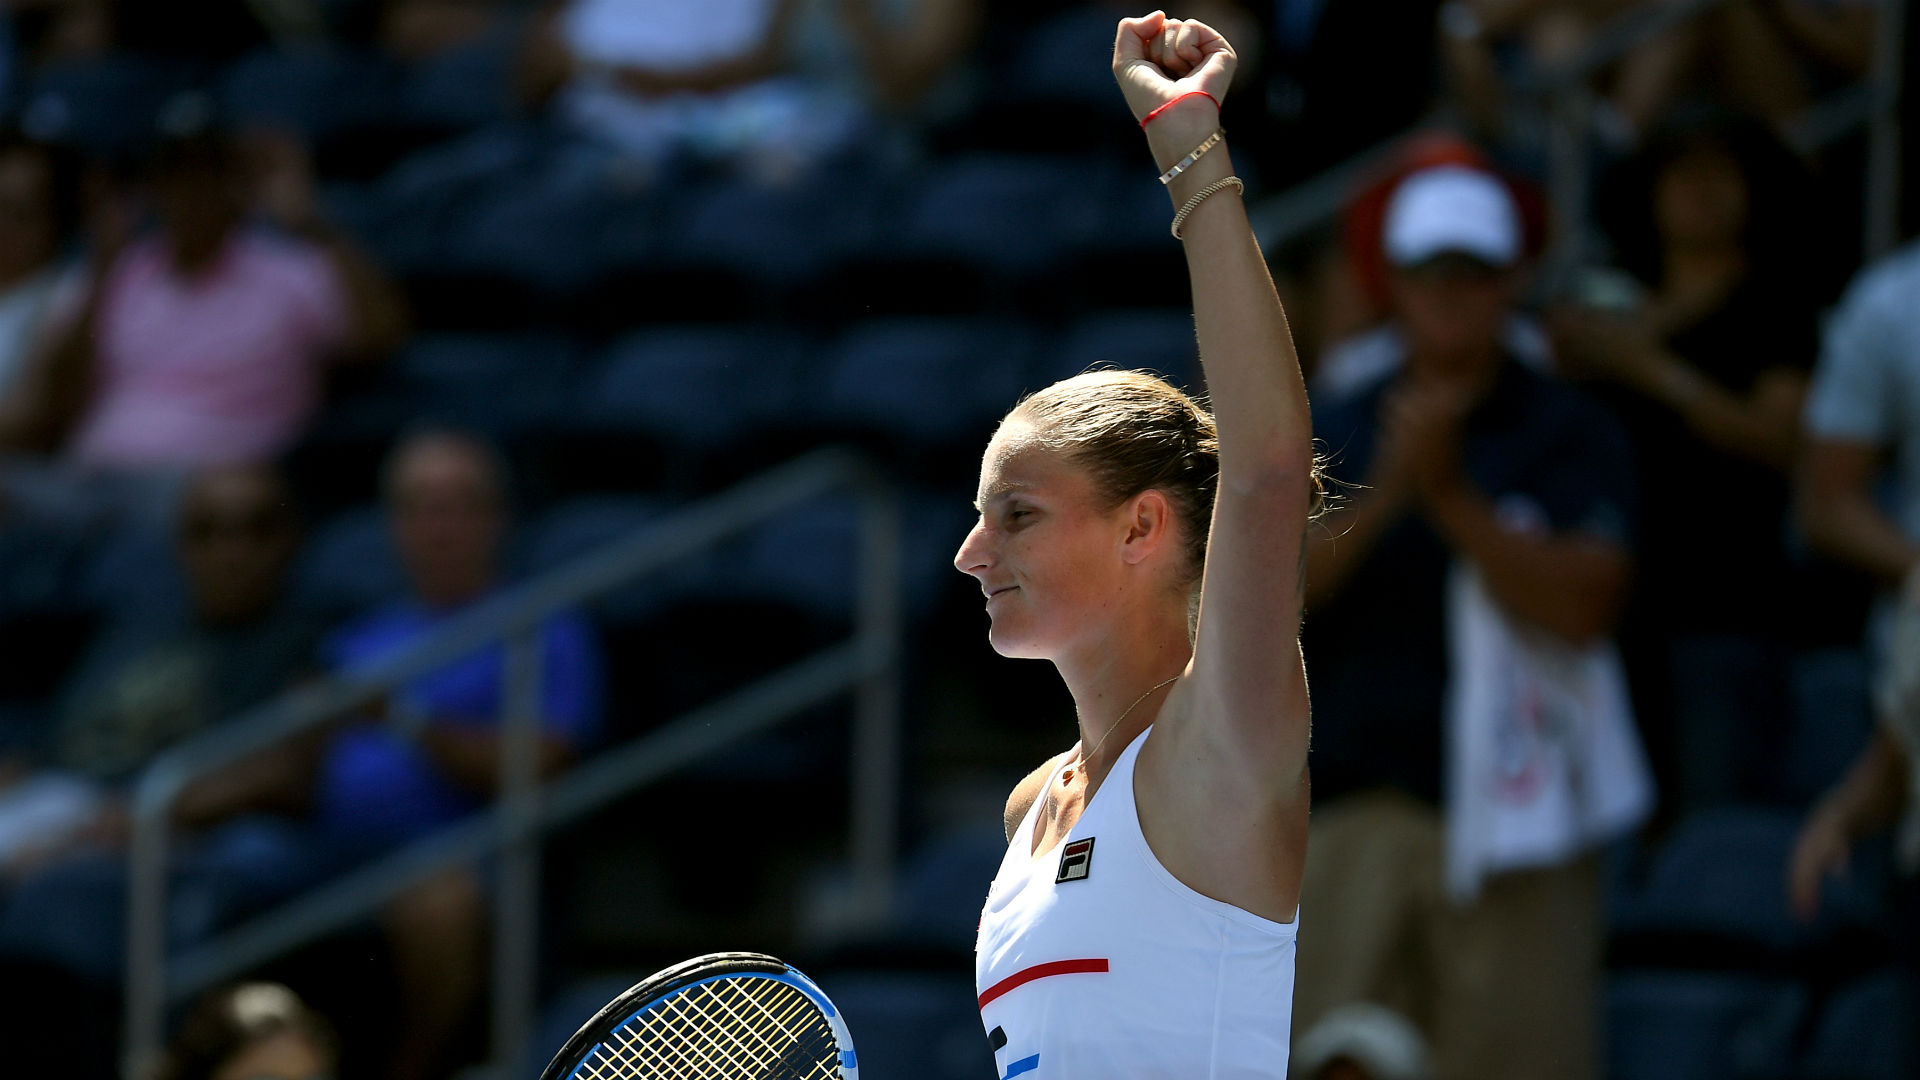 Pliskova doubles up in Zhengzhou, Mladenovic topples Svitolina